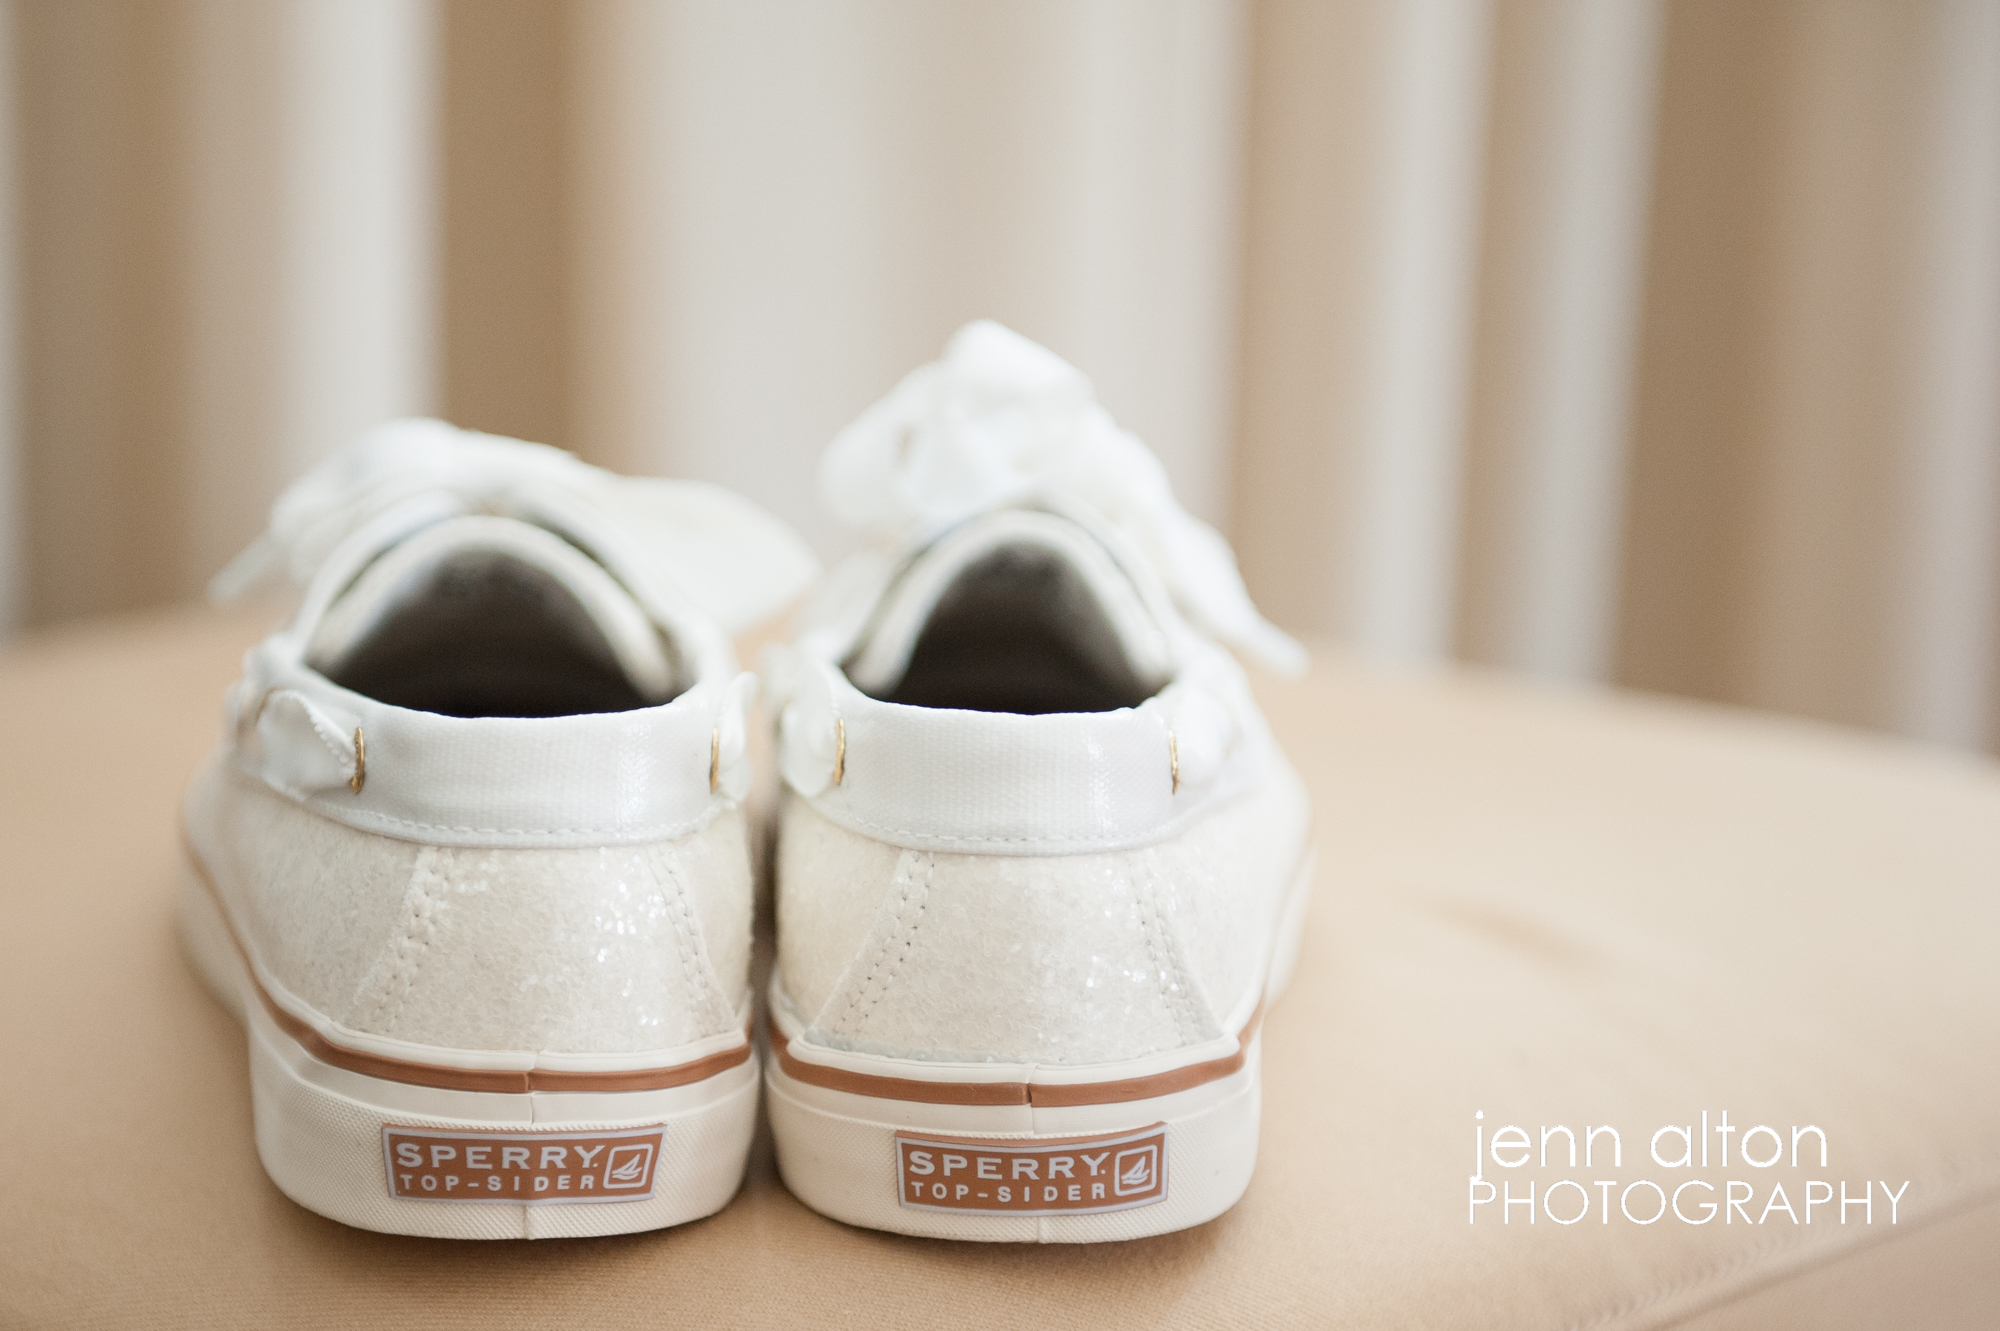 Bride's Sperry Dancing Shoes, Wedding